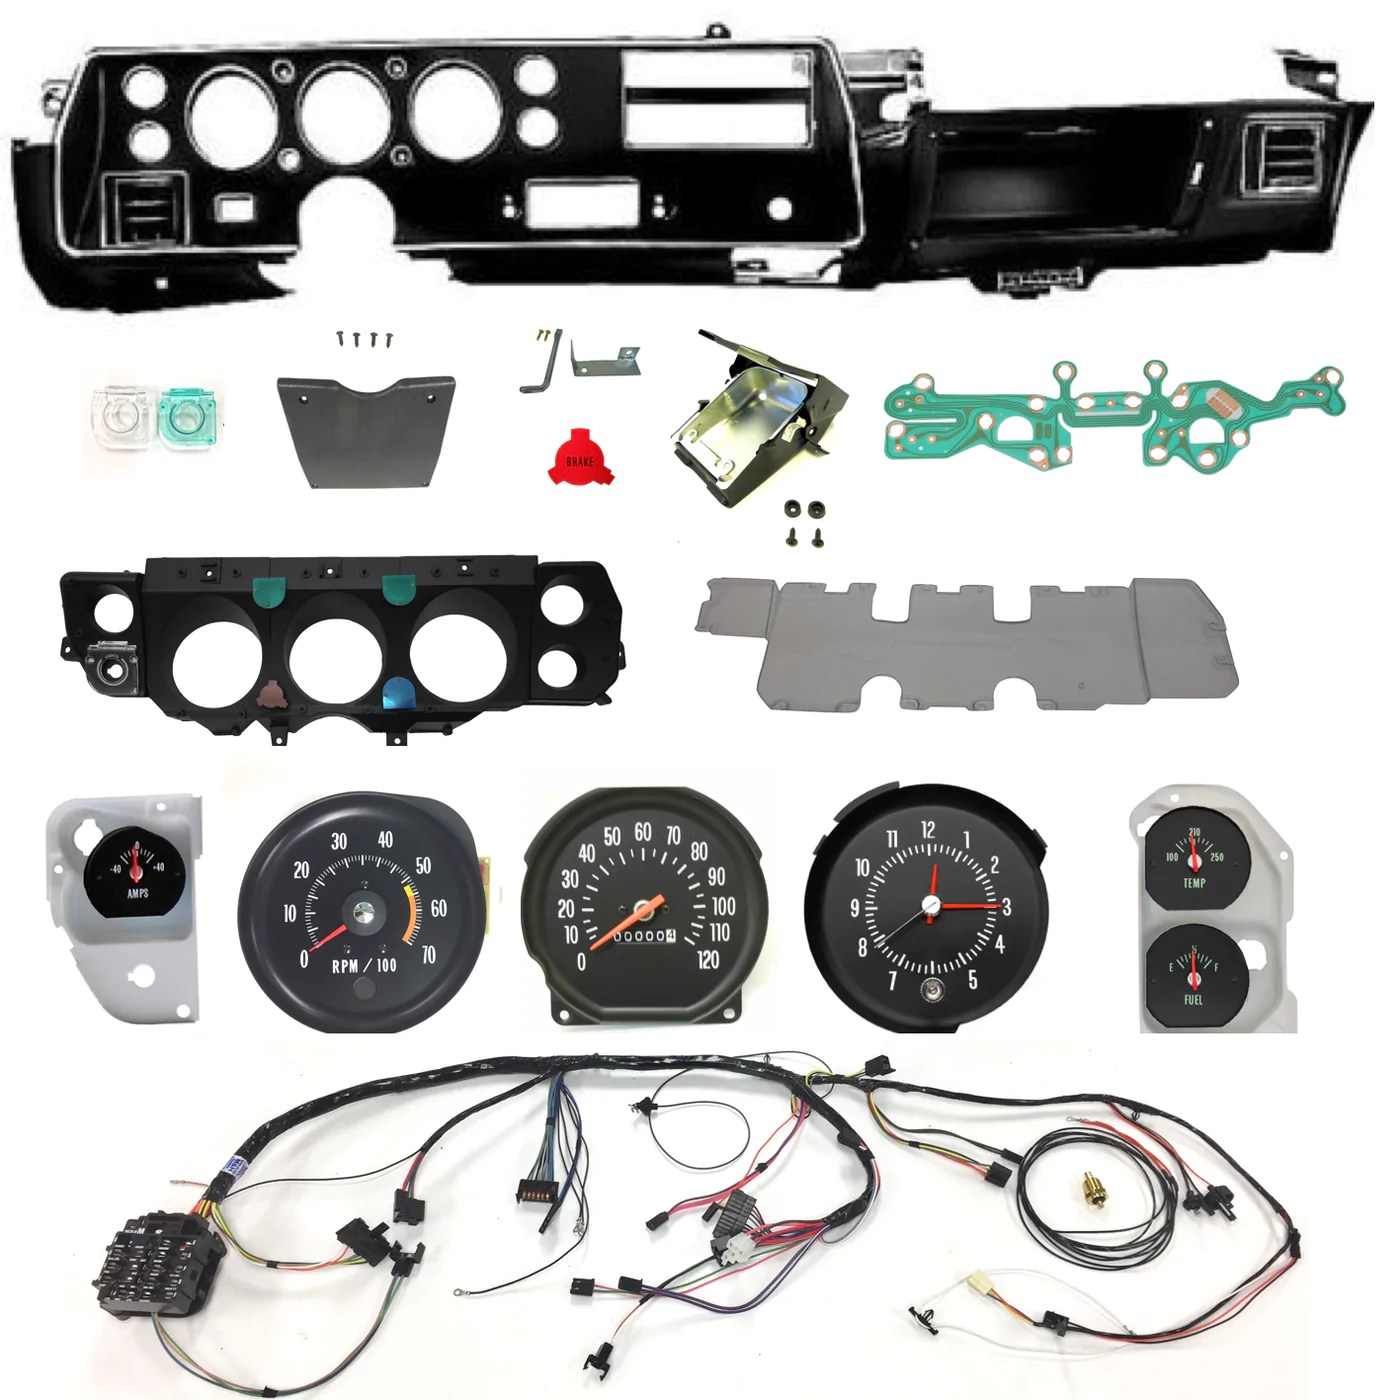 medium resolution of 1971 chevelle ss dash conversion kit el camino super sport floor chevelle dash wiring harness main for cars with factory gauges 1970